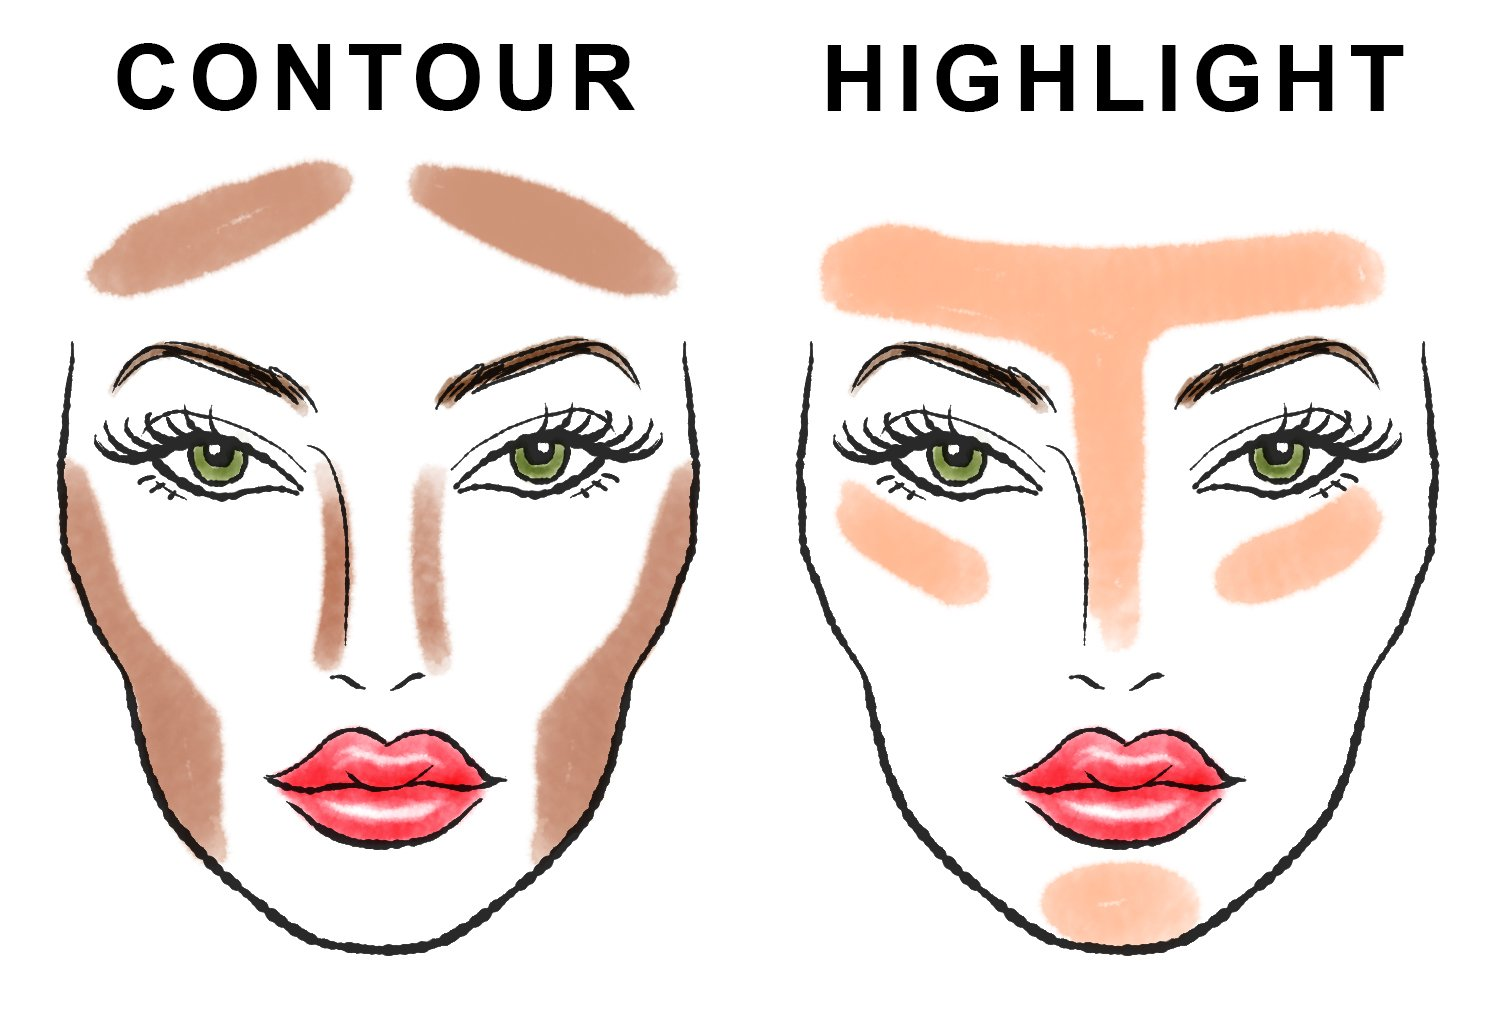 Your Step By Step Guide To The: Step-by-Step Guide: Contour And Highlight Your Face